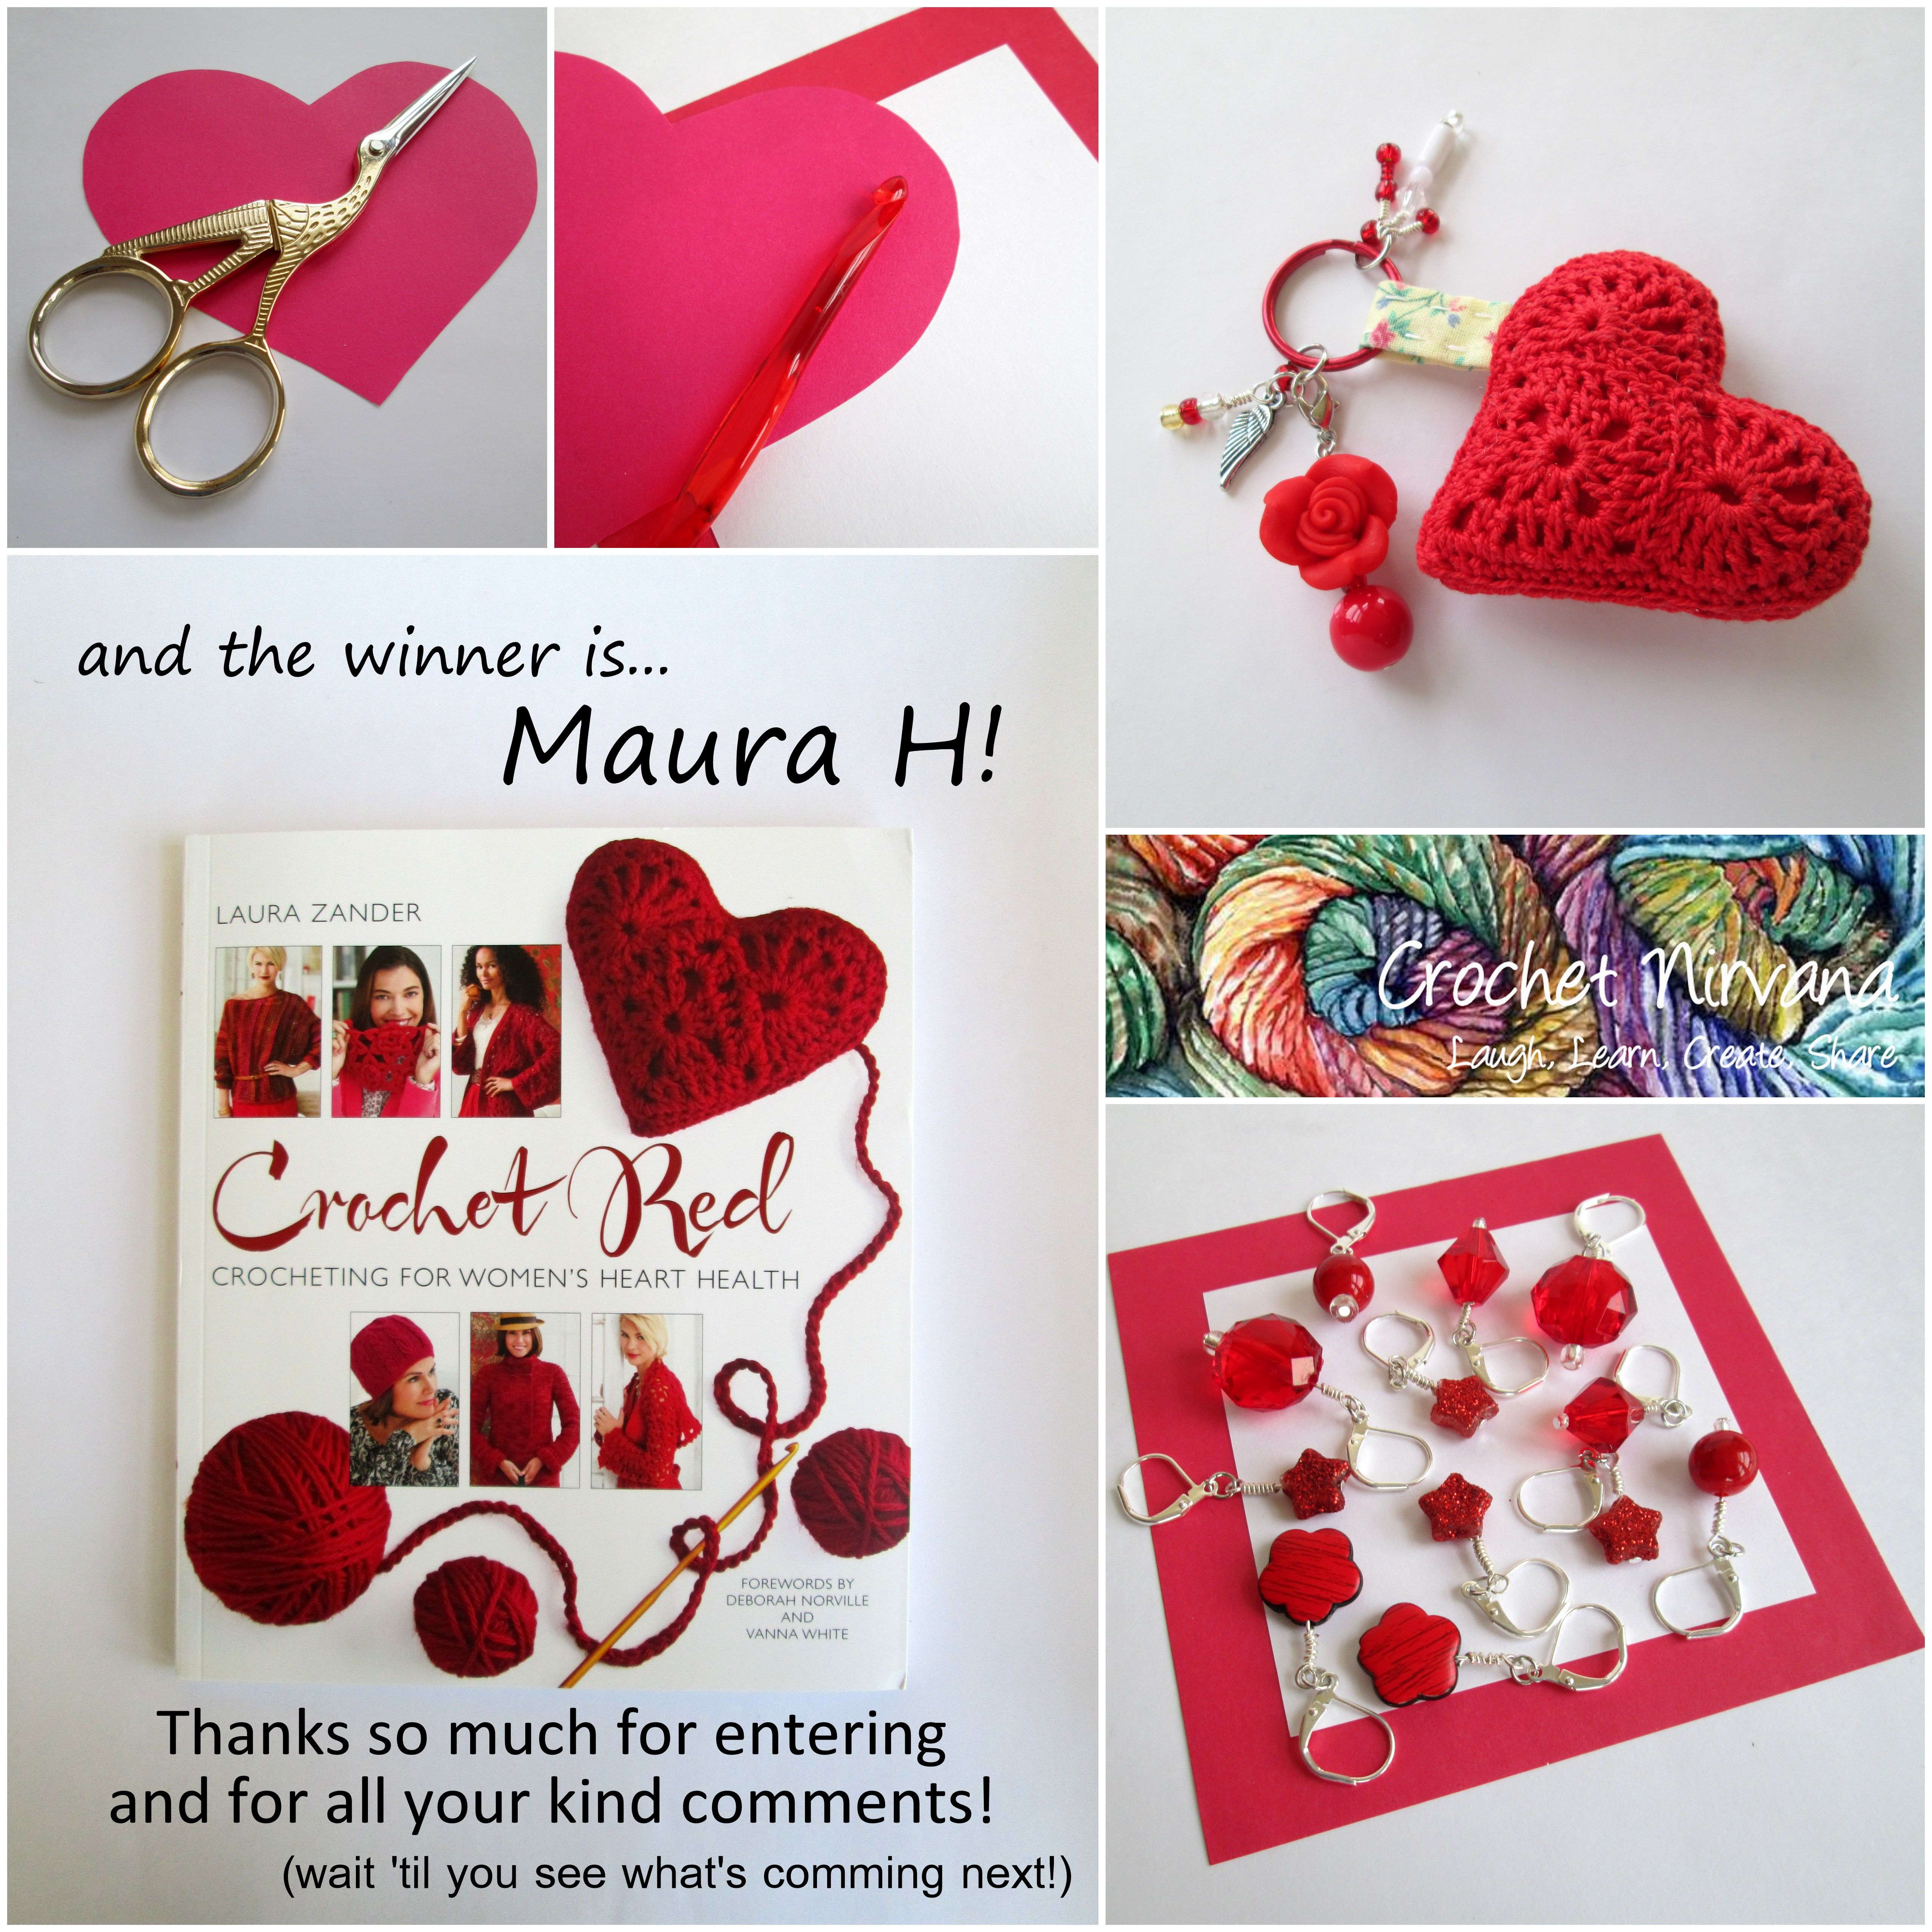 Congratulations Maura!  Come visit me on Facebook or send me an email CrochetNirvana@hotmail.com